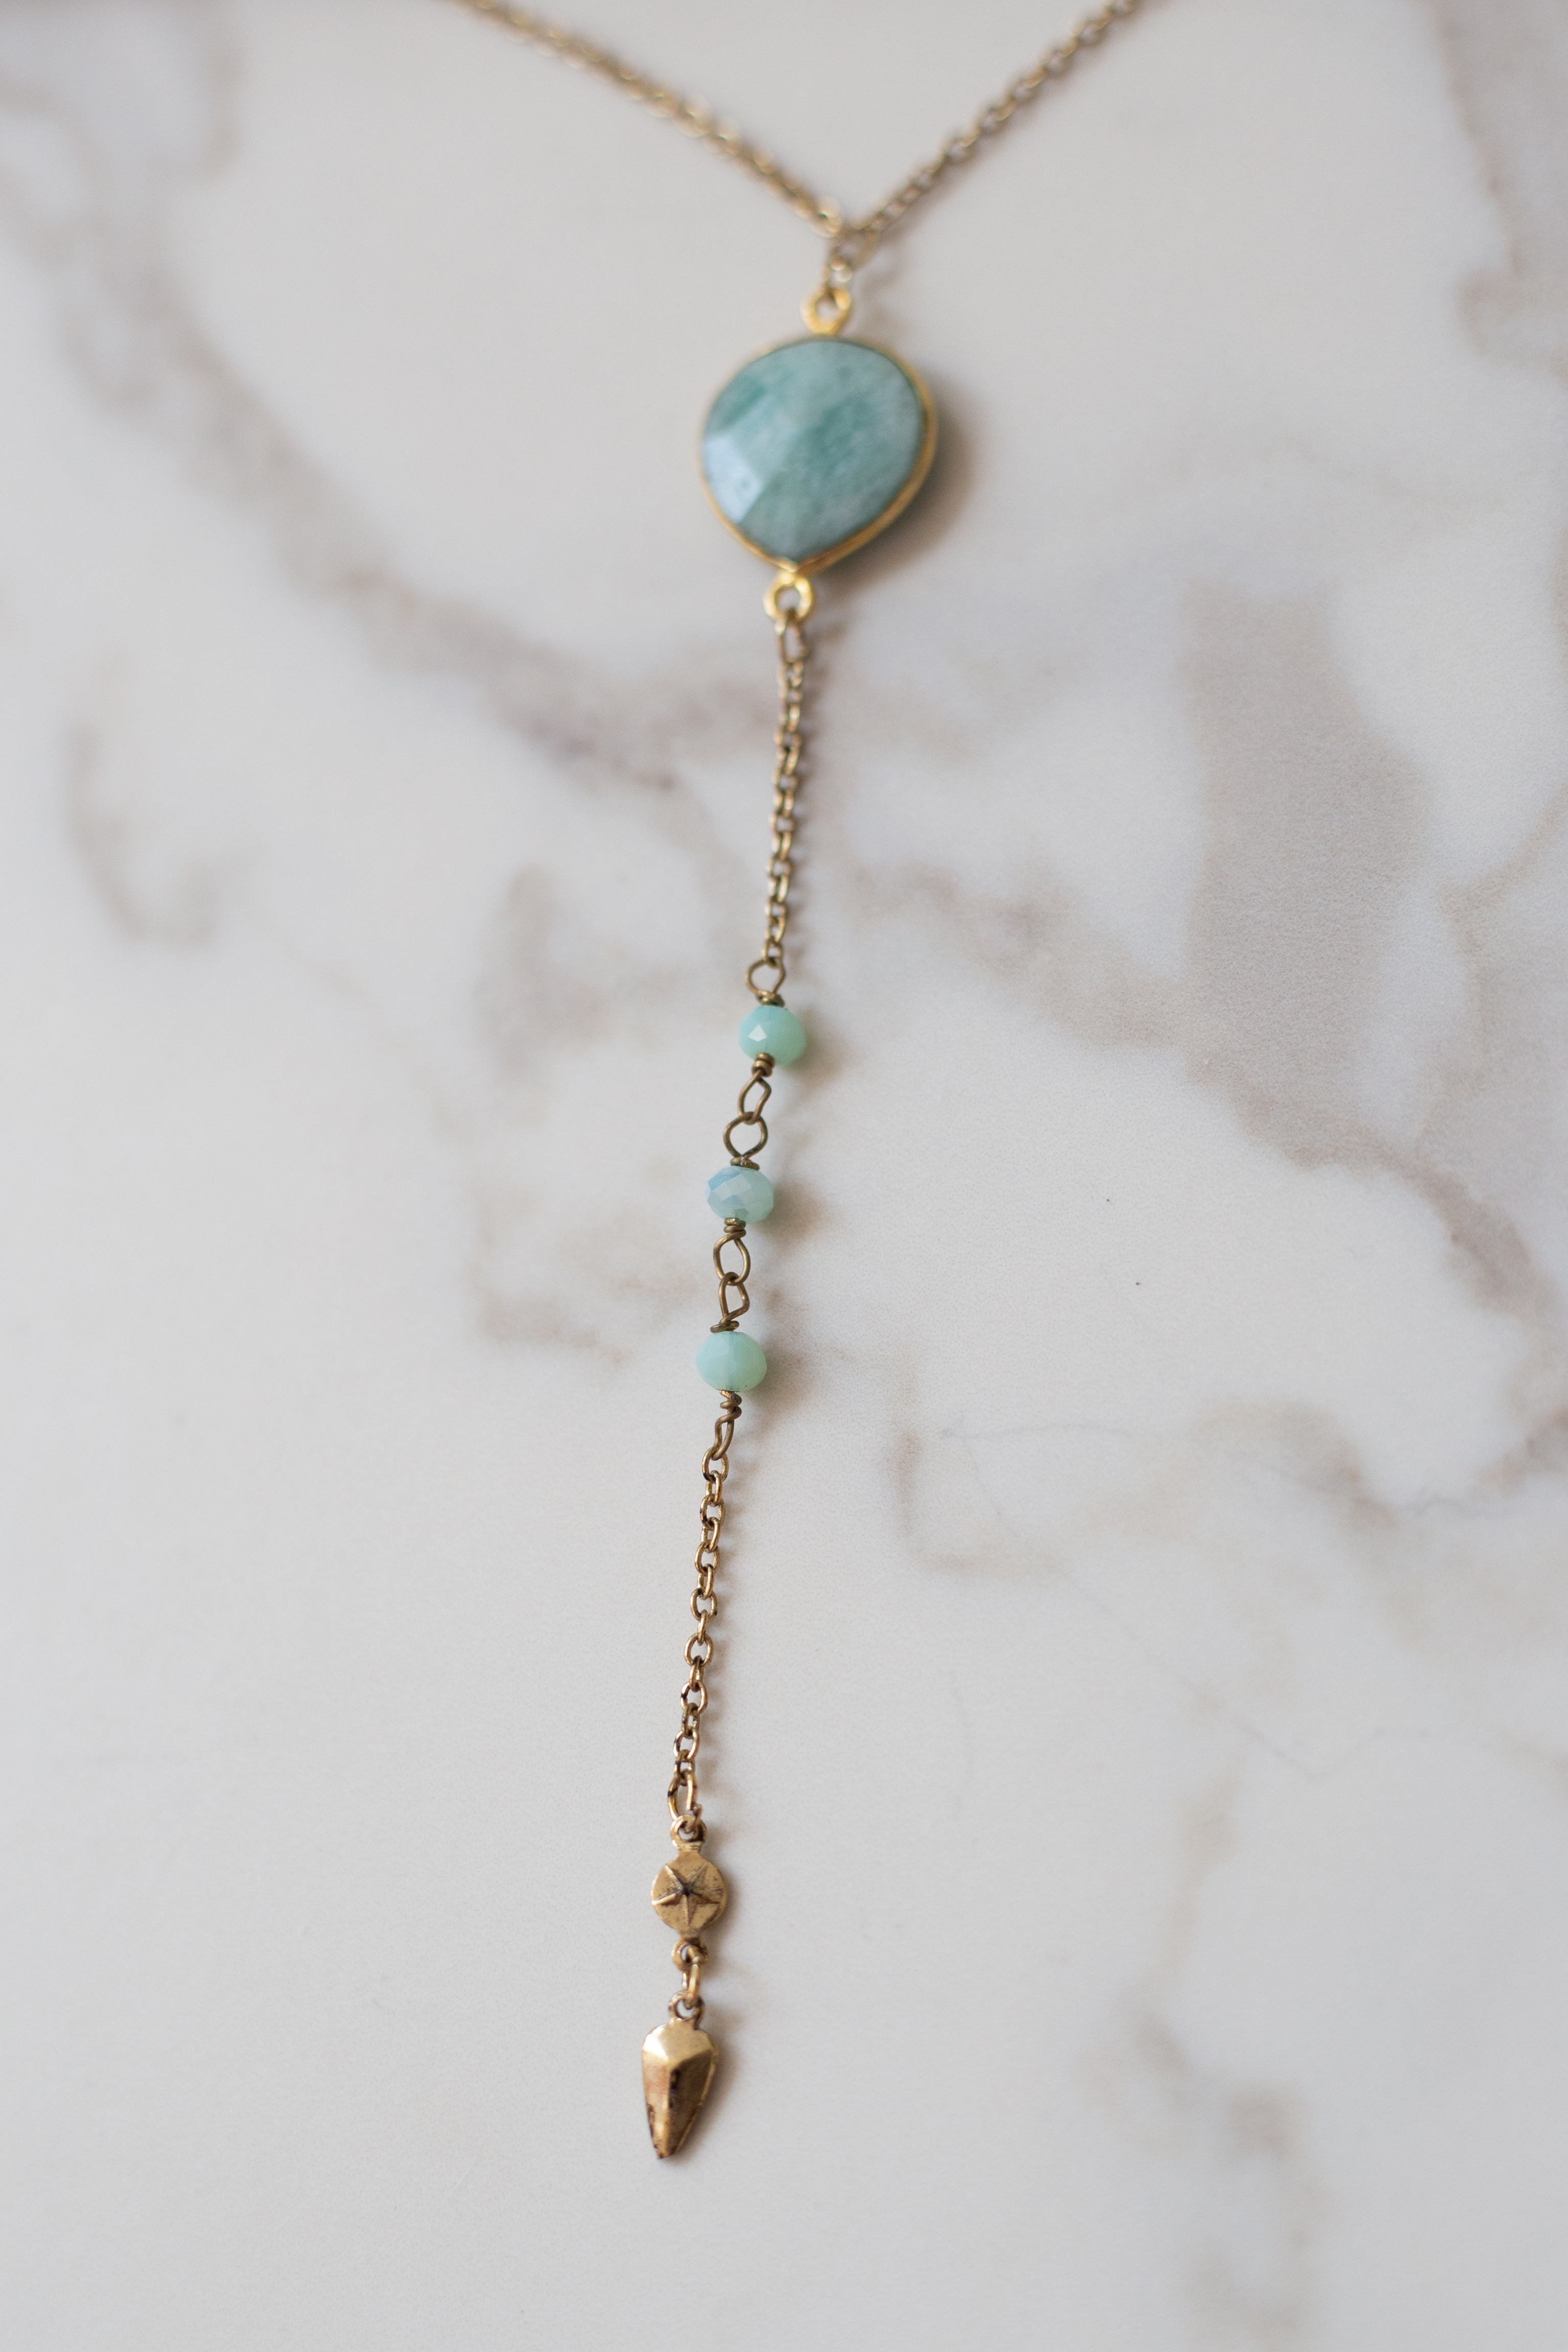 Gold Drop Necklace with Mint Pendant and Beads